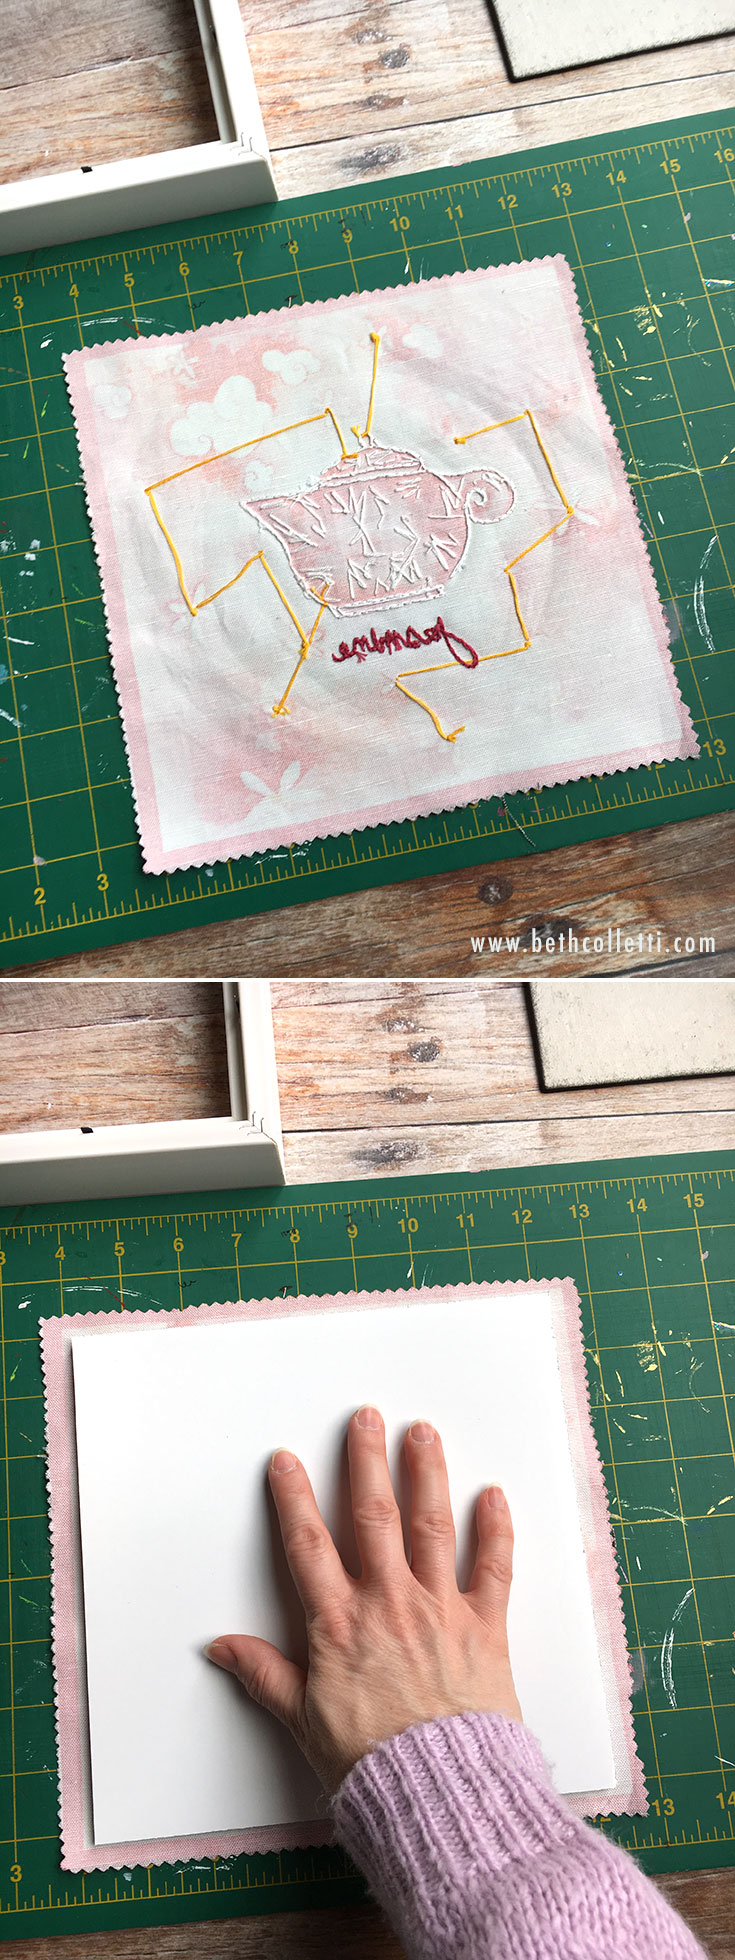 Center the mounting board onto your fabric with the adhesive facing down.